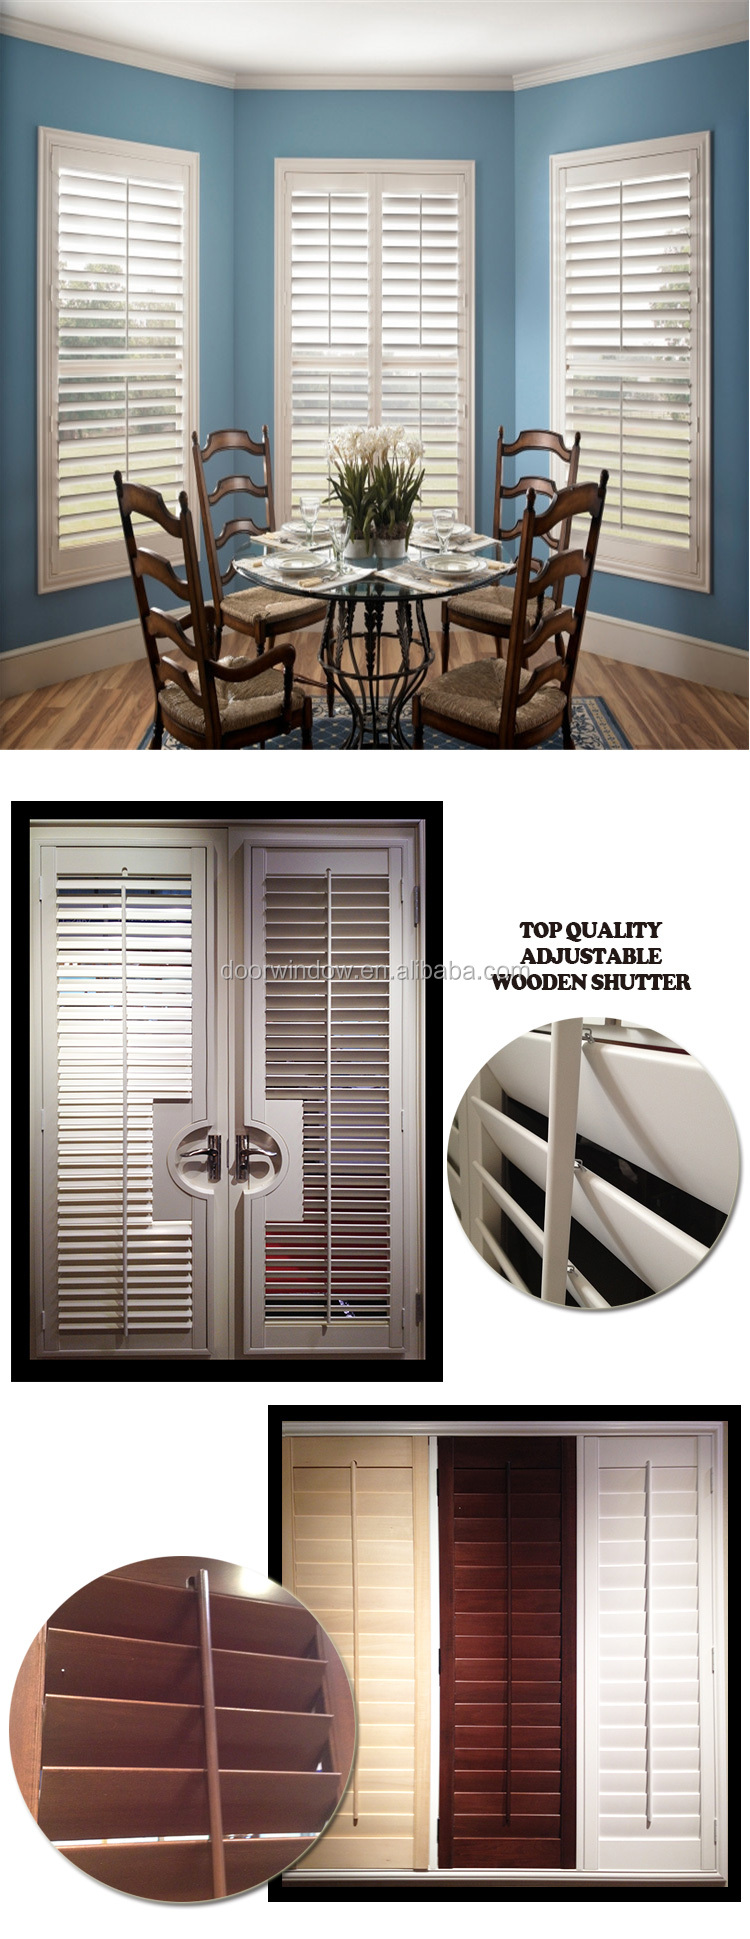 Adjustable exterior shutters acoustic louver